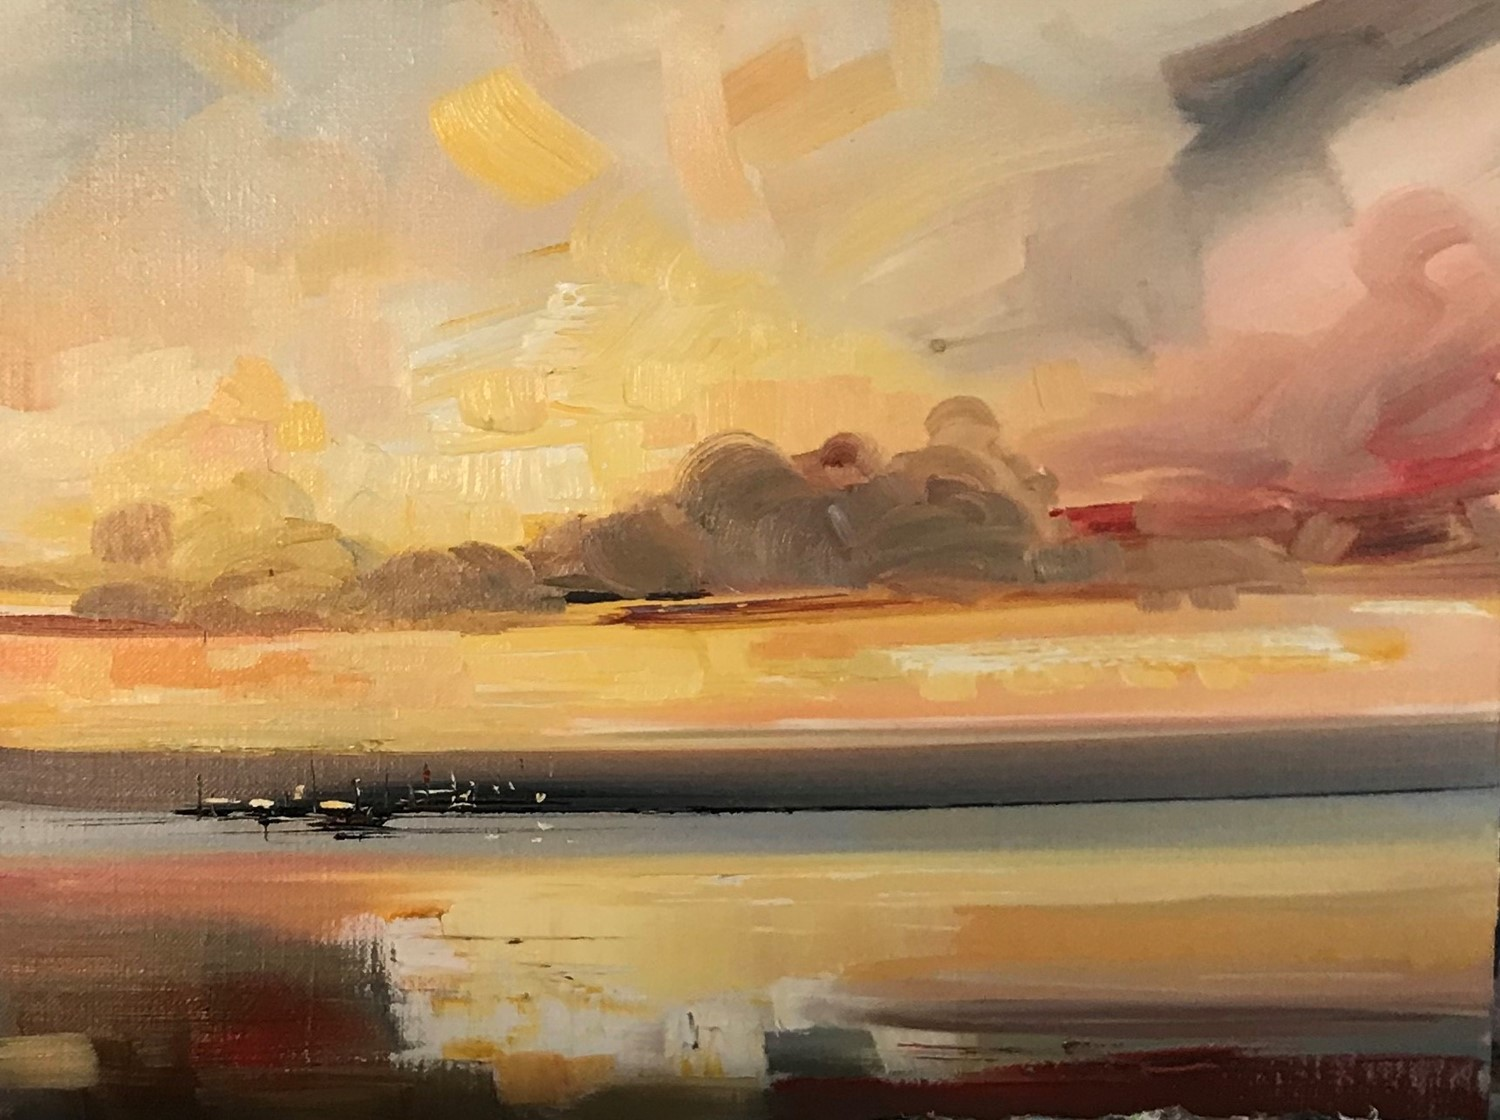 'A Hazy kind of sunset' by artist Rosanne Barr